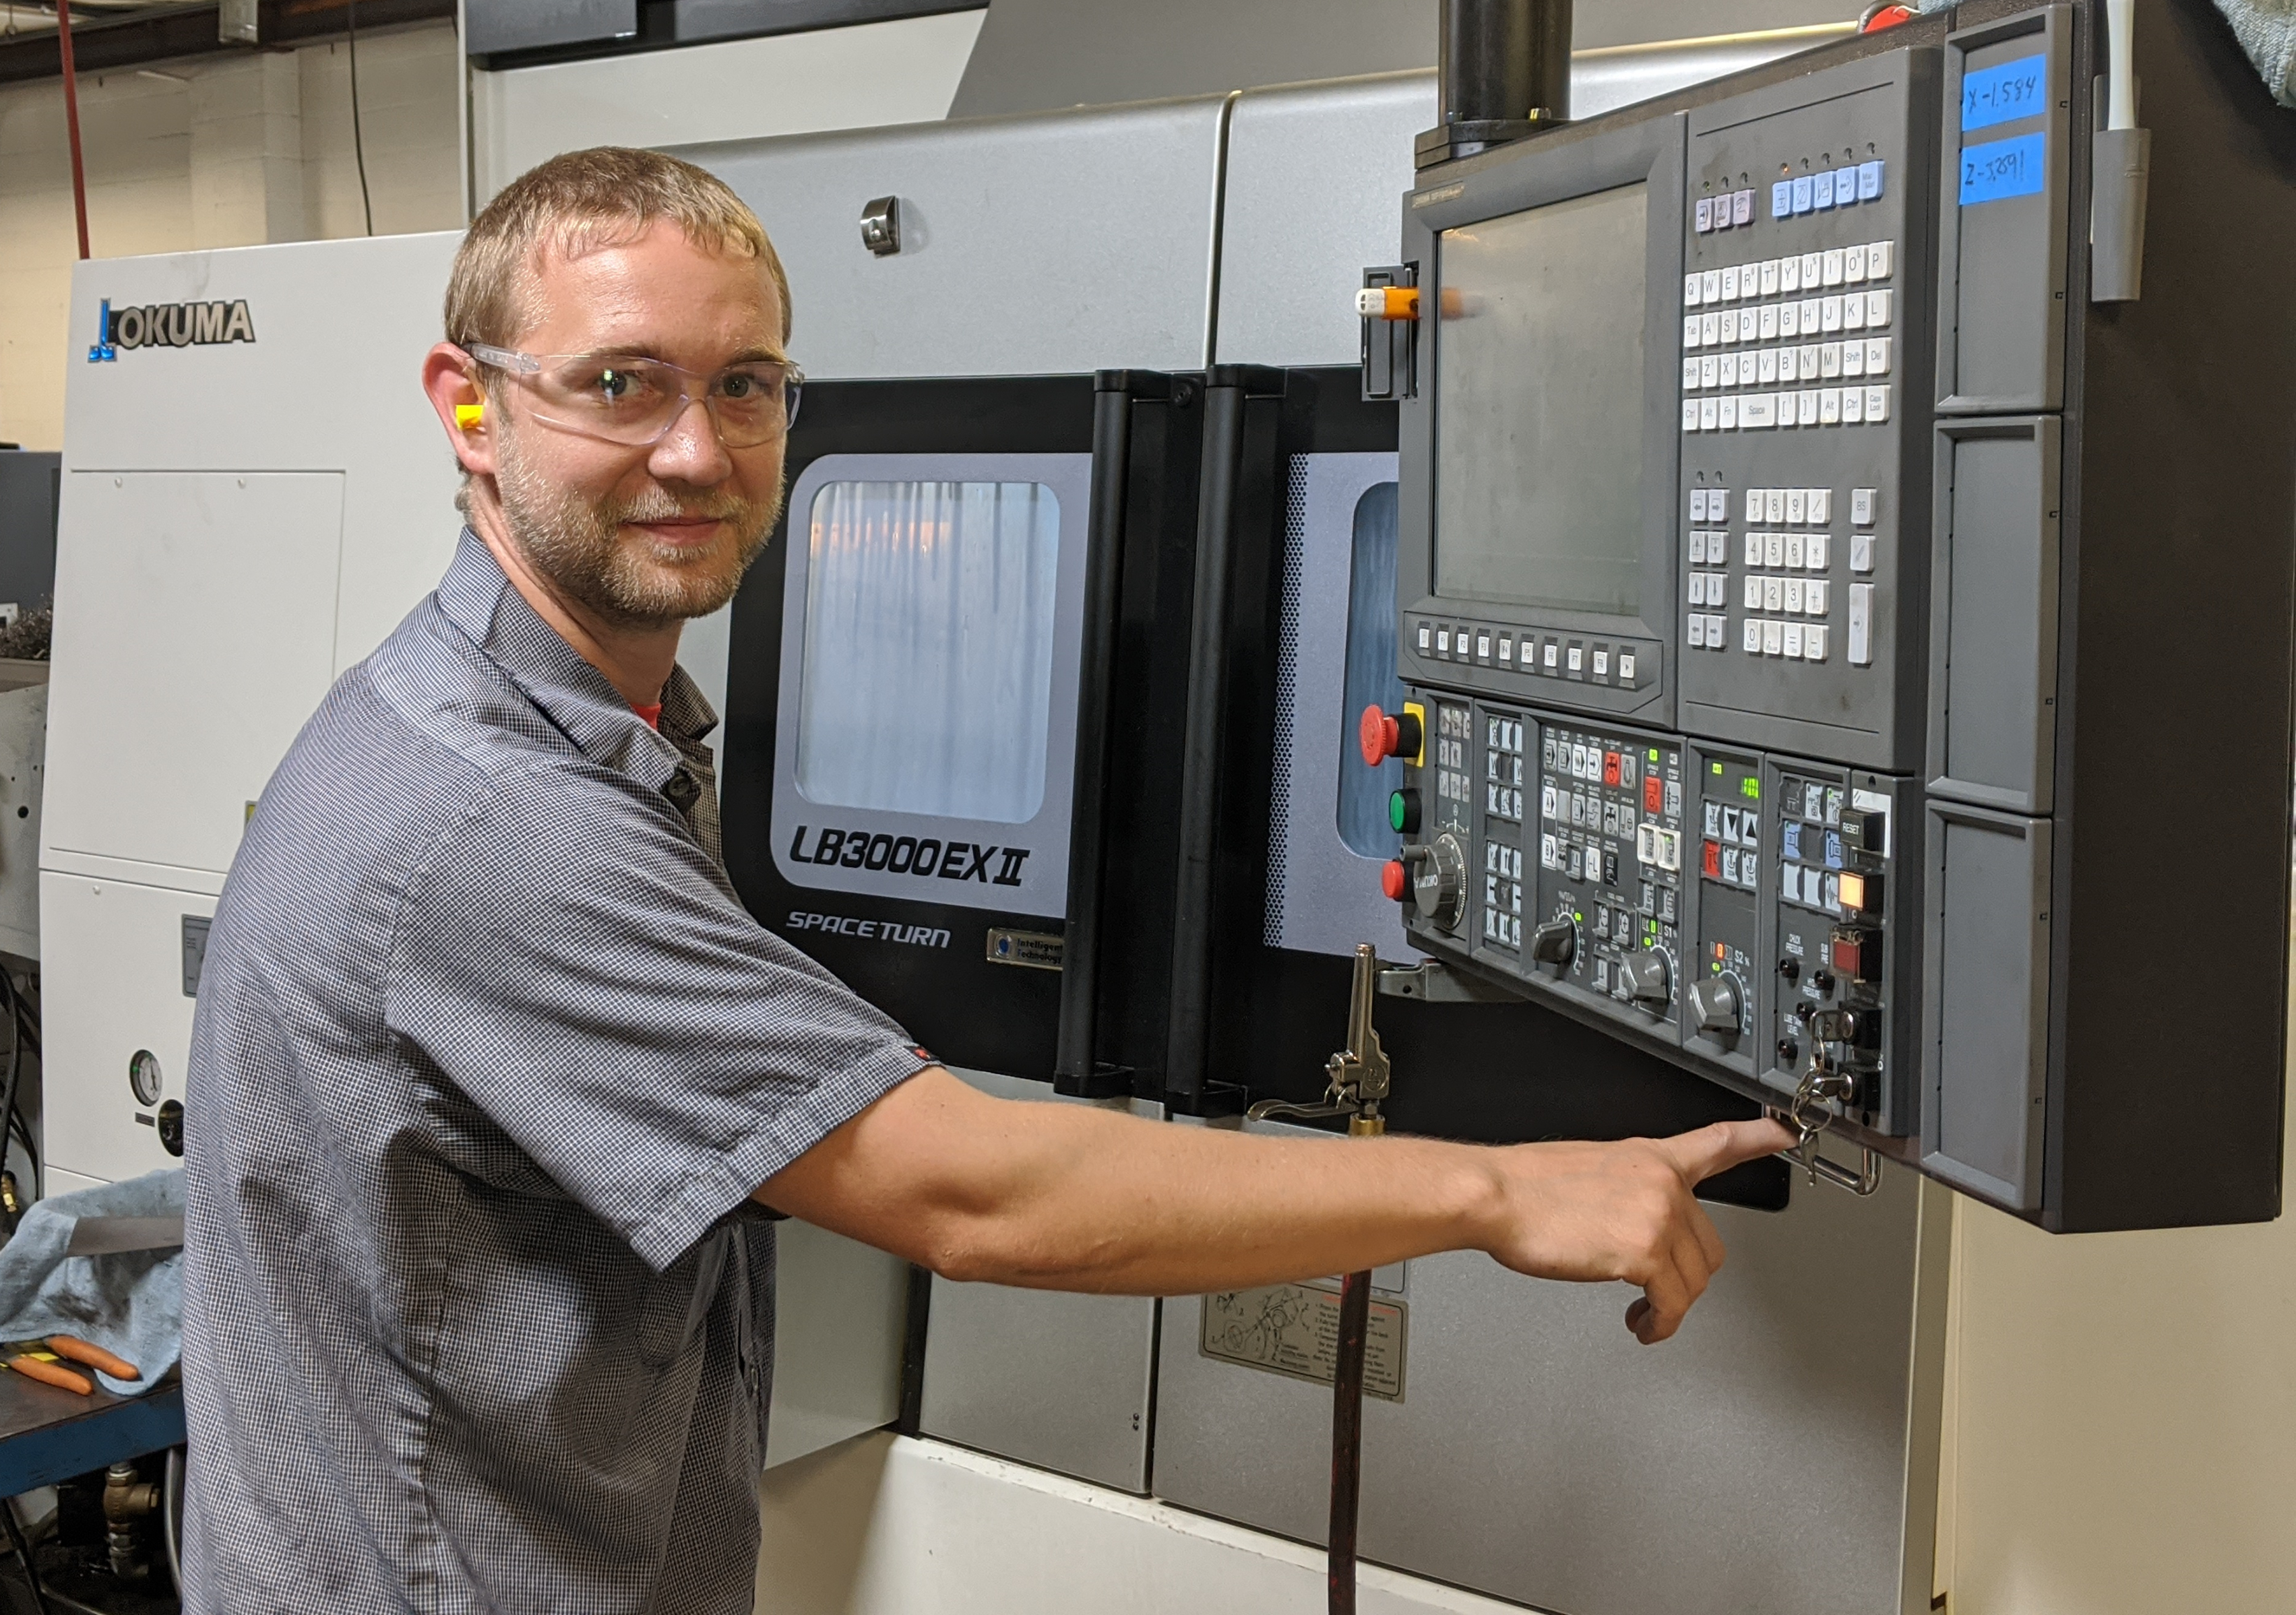 Clay Adcock uses machine controller on shop floor